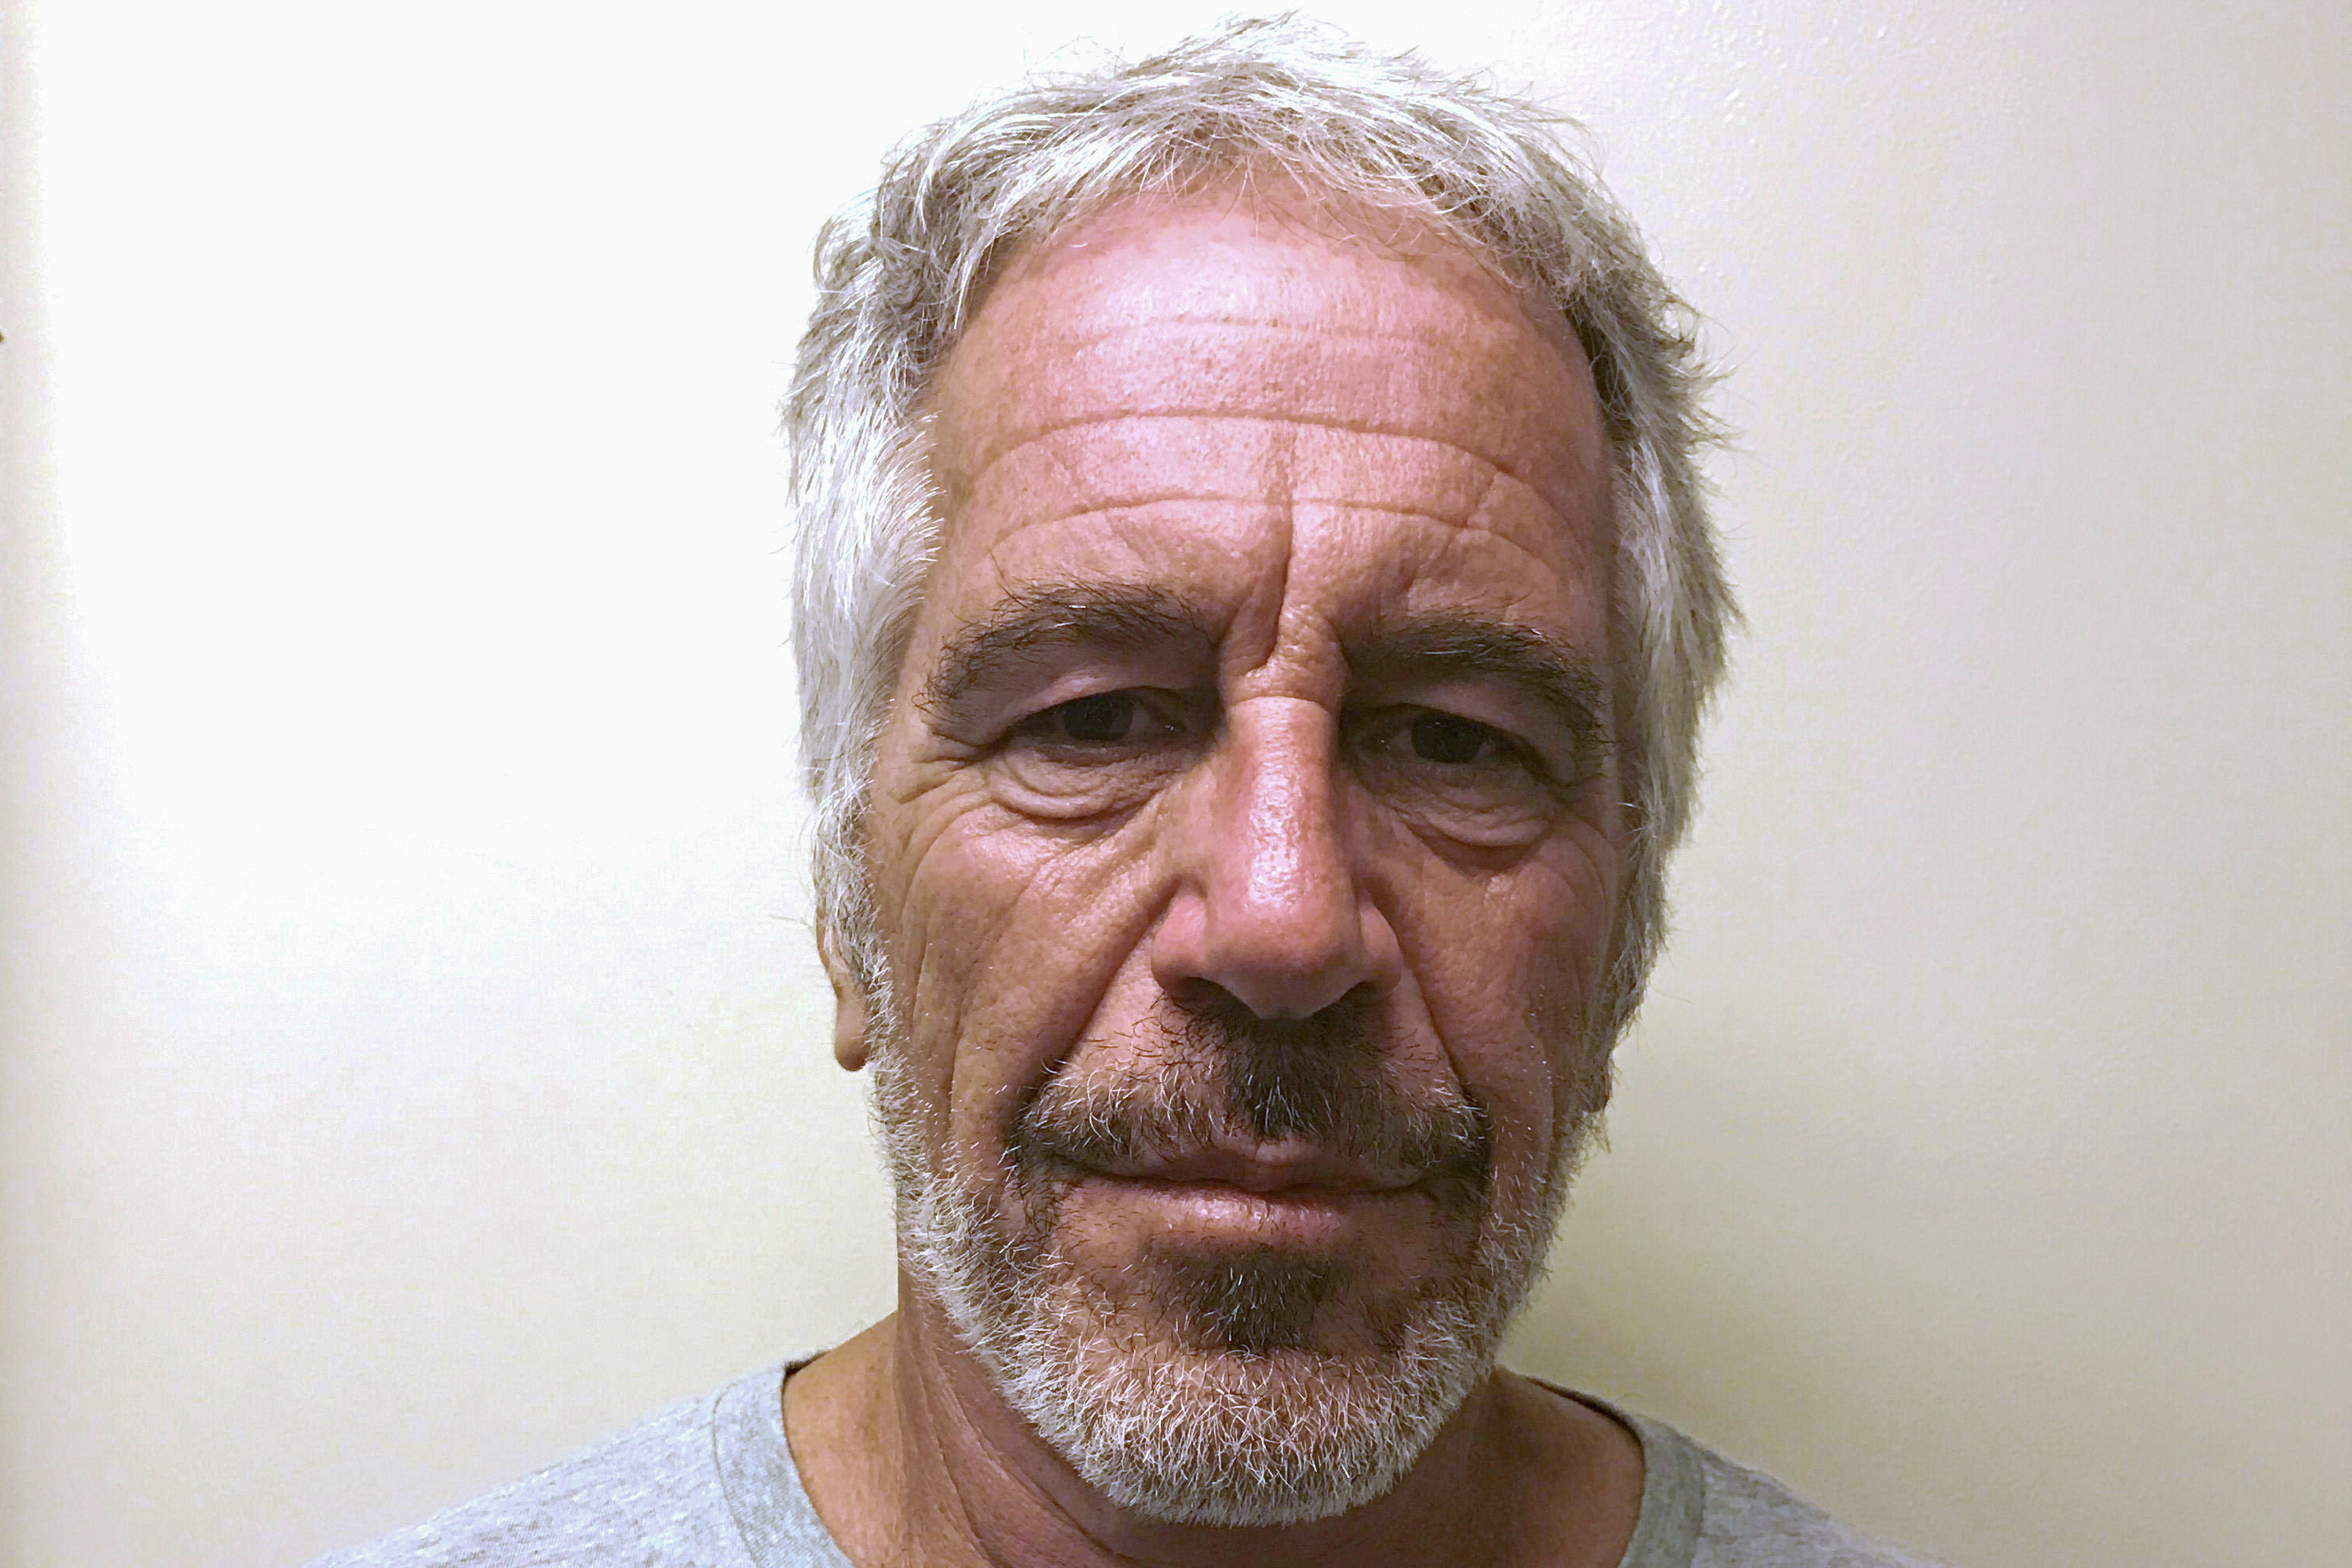 FILE PHOTO:    U.S. financier Jeffrey Epstein appears in a photograph taken for the New York State Division of Criminal Justice Services' sex offender registry March 28, 2017 and obtained by Reuters July 10, 2019.  New York State Division of Criminal Justice Services/Handout via REUTERS. THIS IMAGE HAS BEEN SUPPLIED BY A THIRD PARTY.        NO RESALES. NO ARCHIVES.